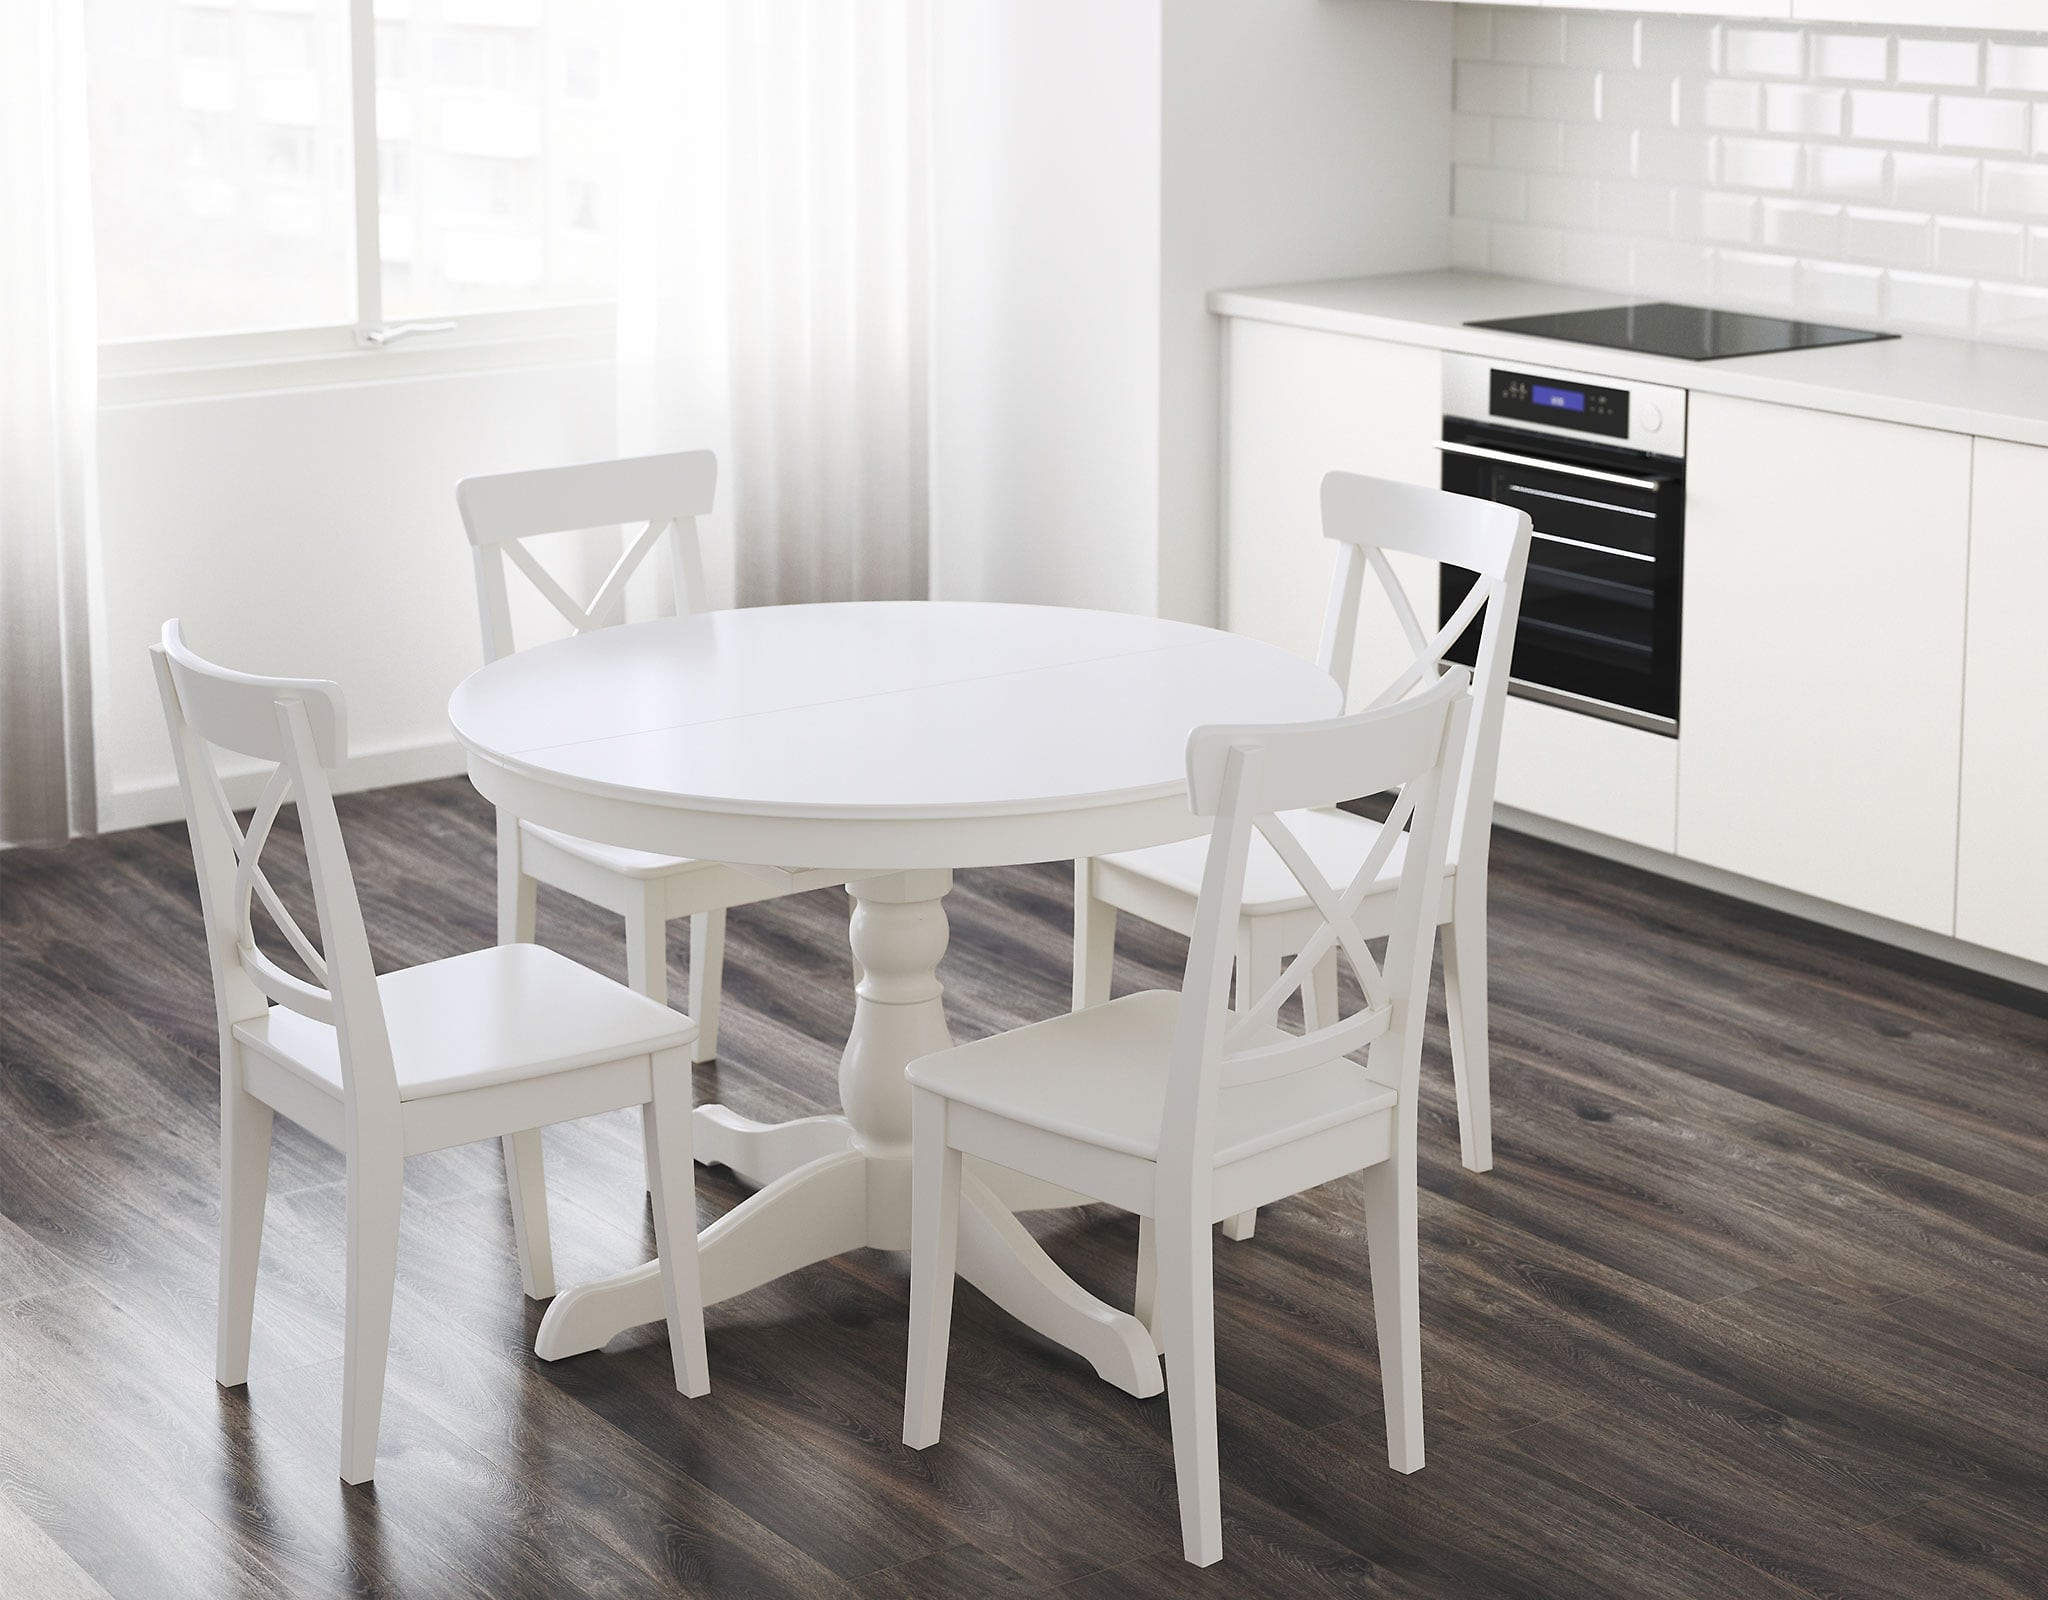 Best ideas about Ikea Round Dining Table . Save or Pin Round Dining Tables Now.